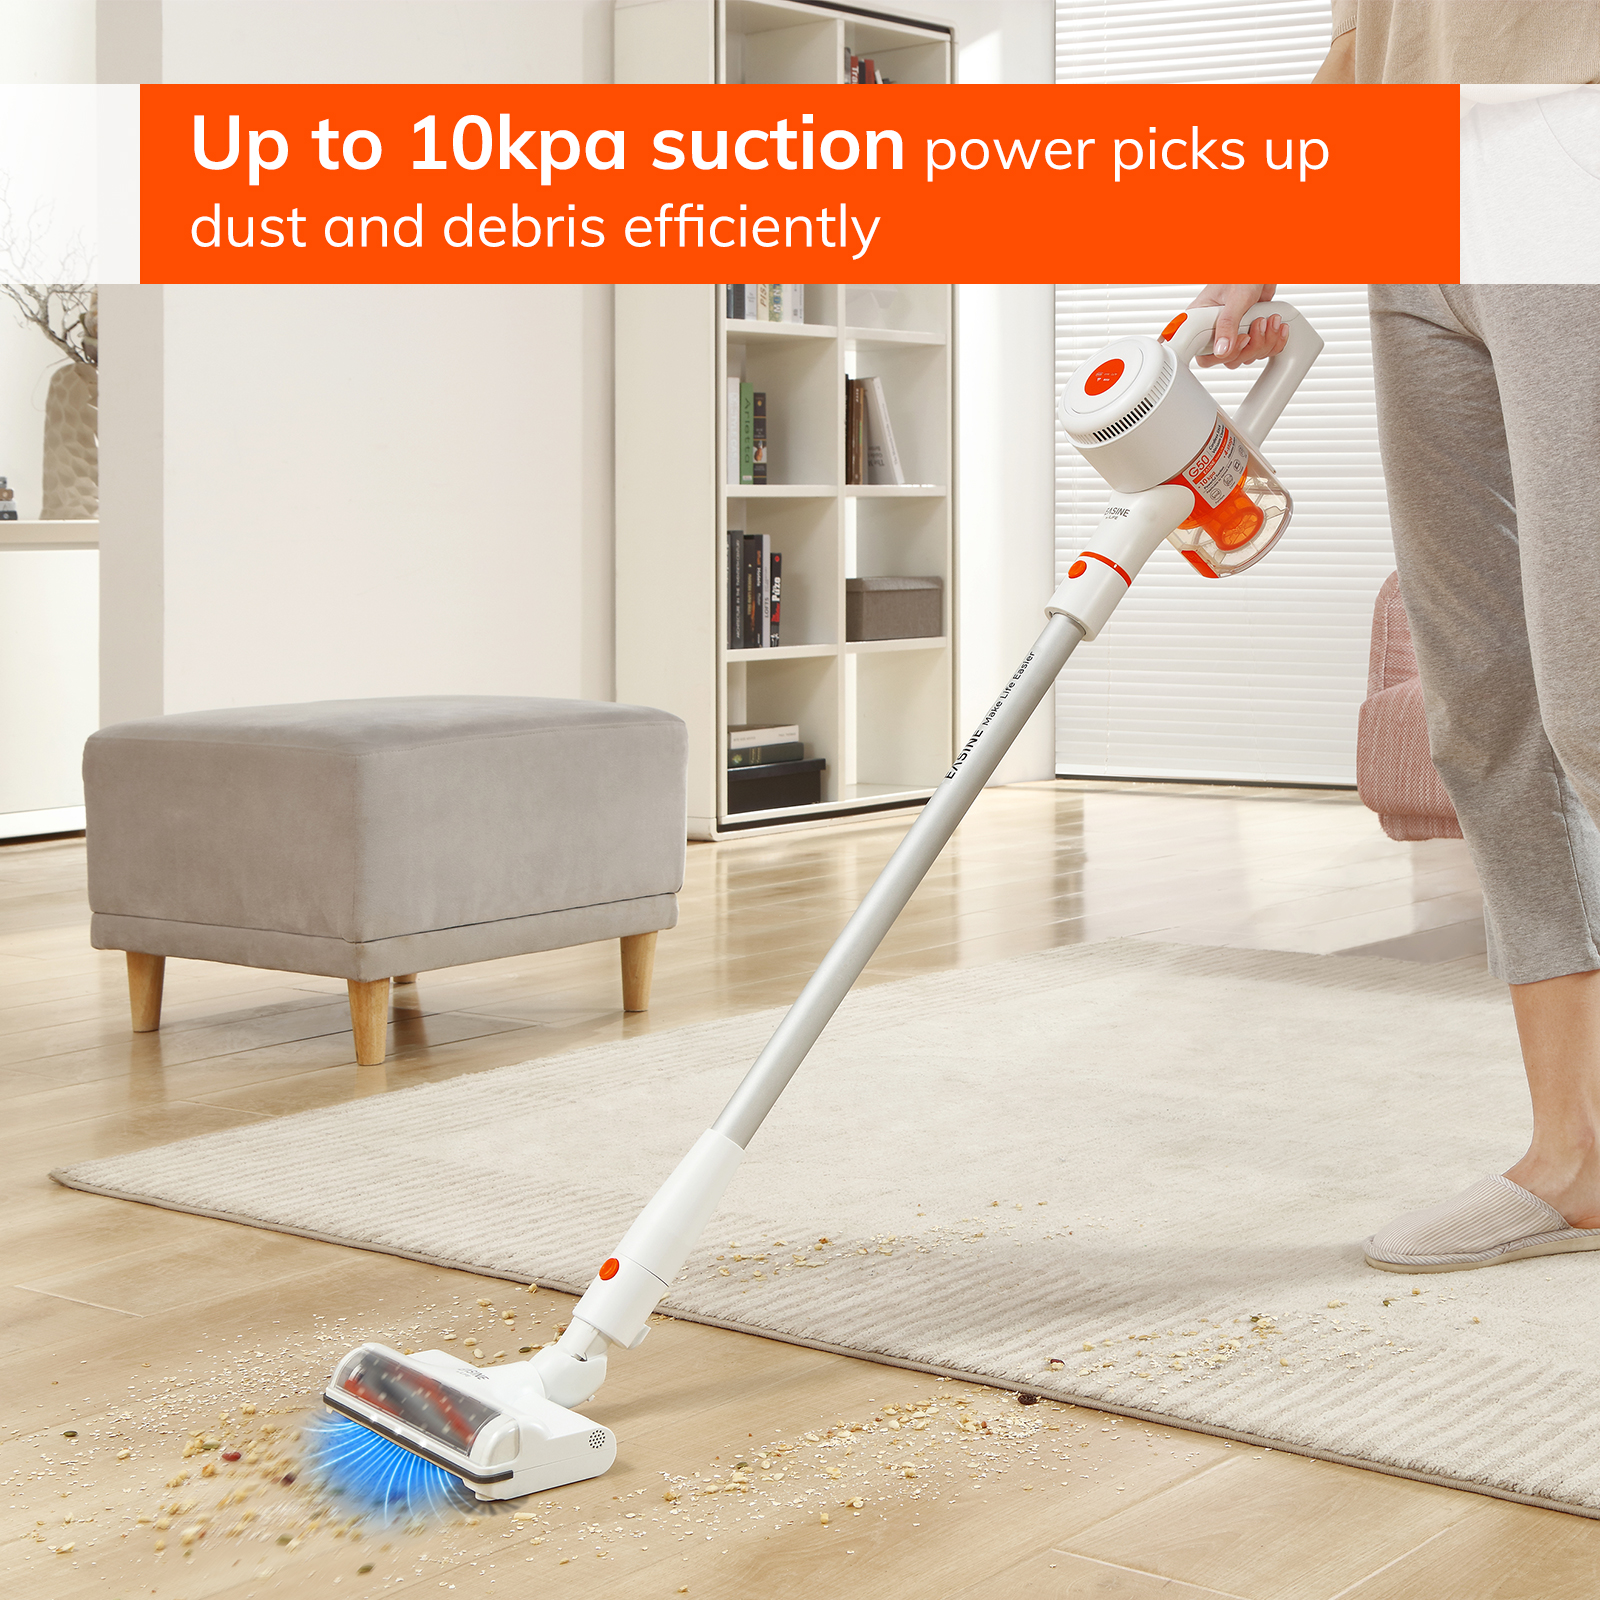 EASINE by ILIFE G50 handheld vacuum cleaner, 10,500Pa Powerful Suction ,LED  display, 35mins Runtime, 2.5Hours Fast Charge 2